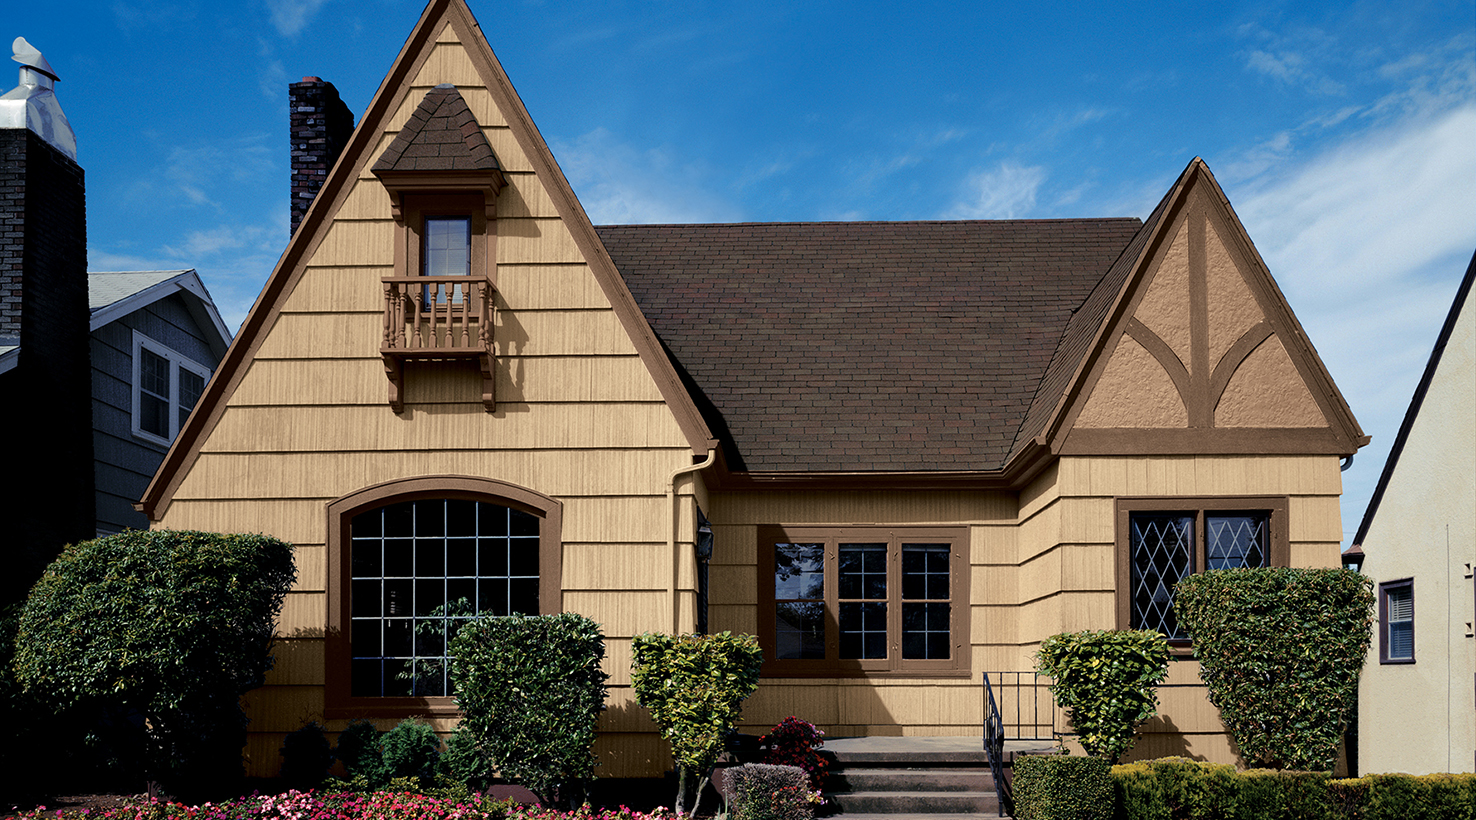 Exterior Color Inspiration Body Paint Colors Sherwin Williams - Home-exterior-painting